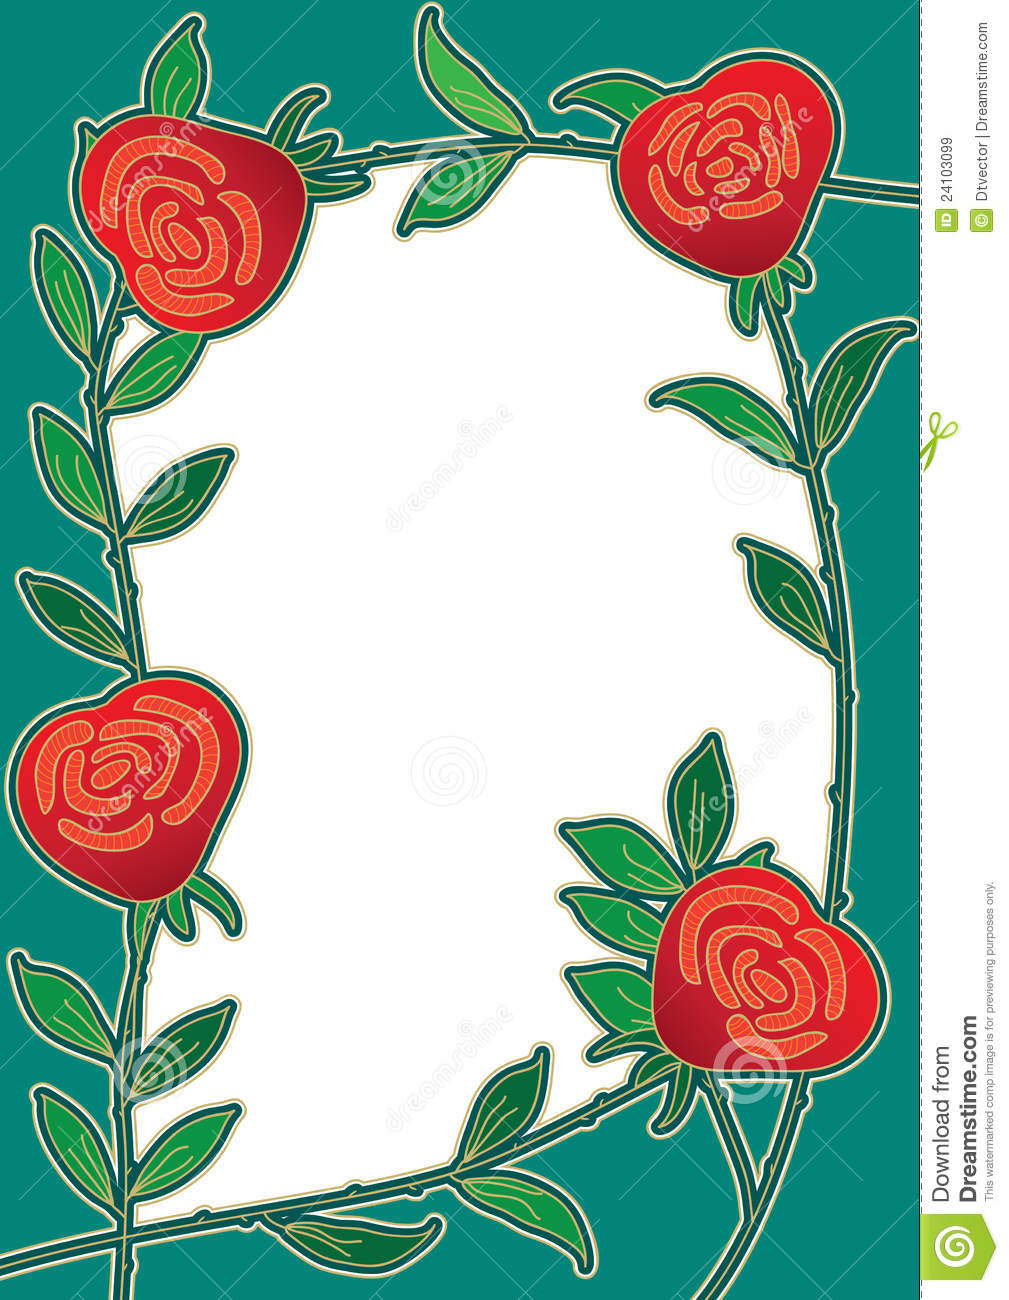 Rose Flower Frame Card_eps stock vector. Illustration of book - 24103099